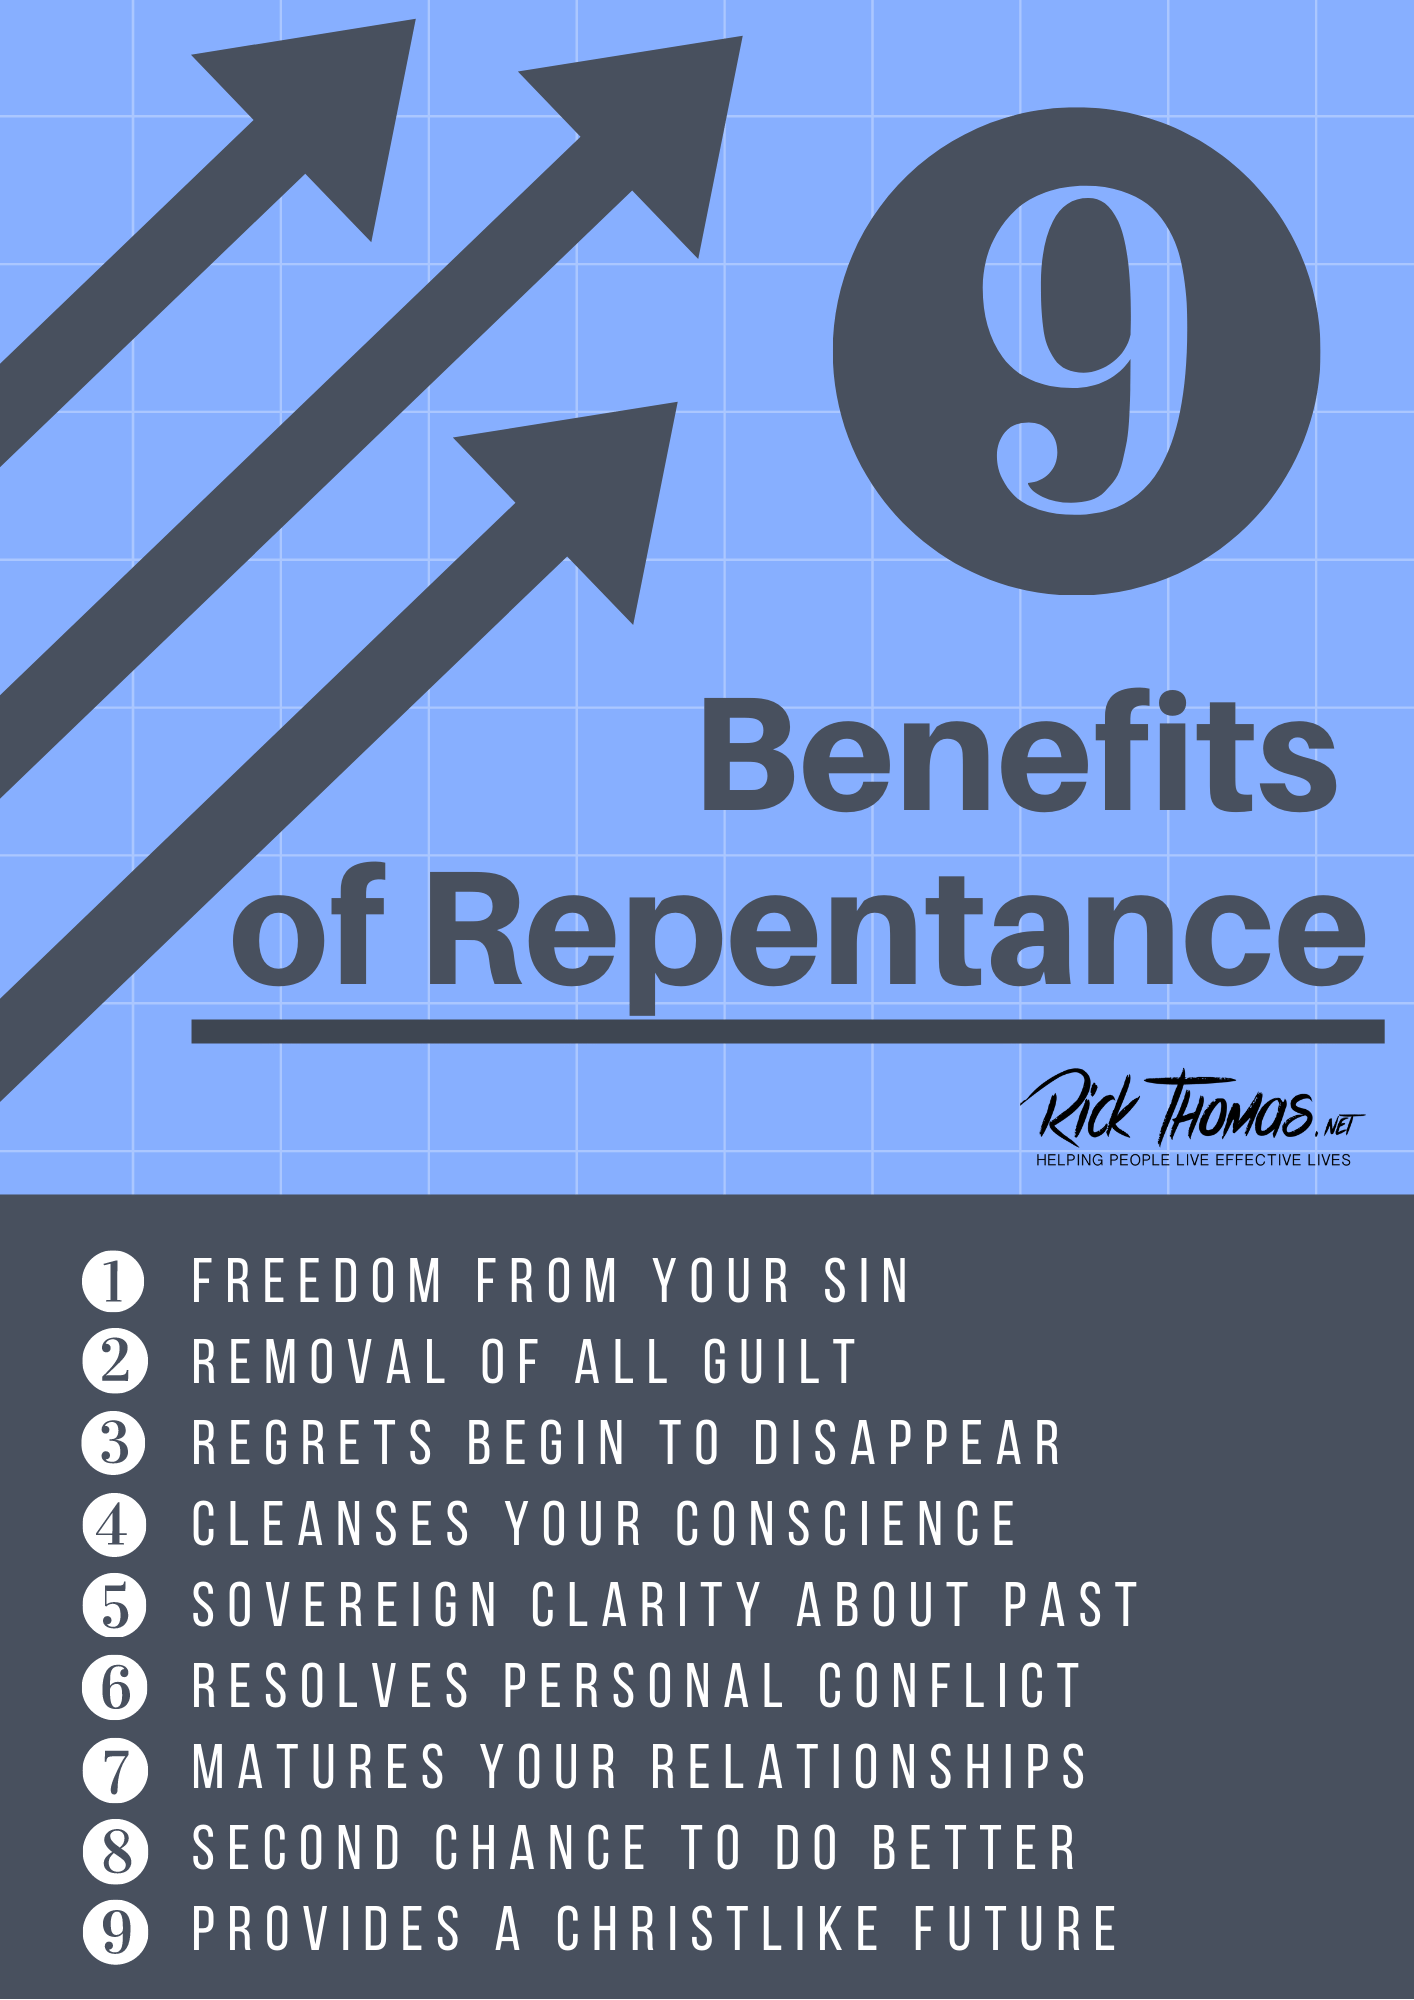 Benefits of Repentance